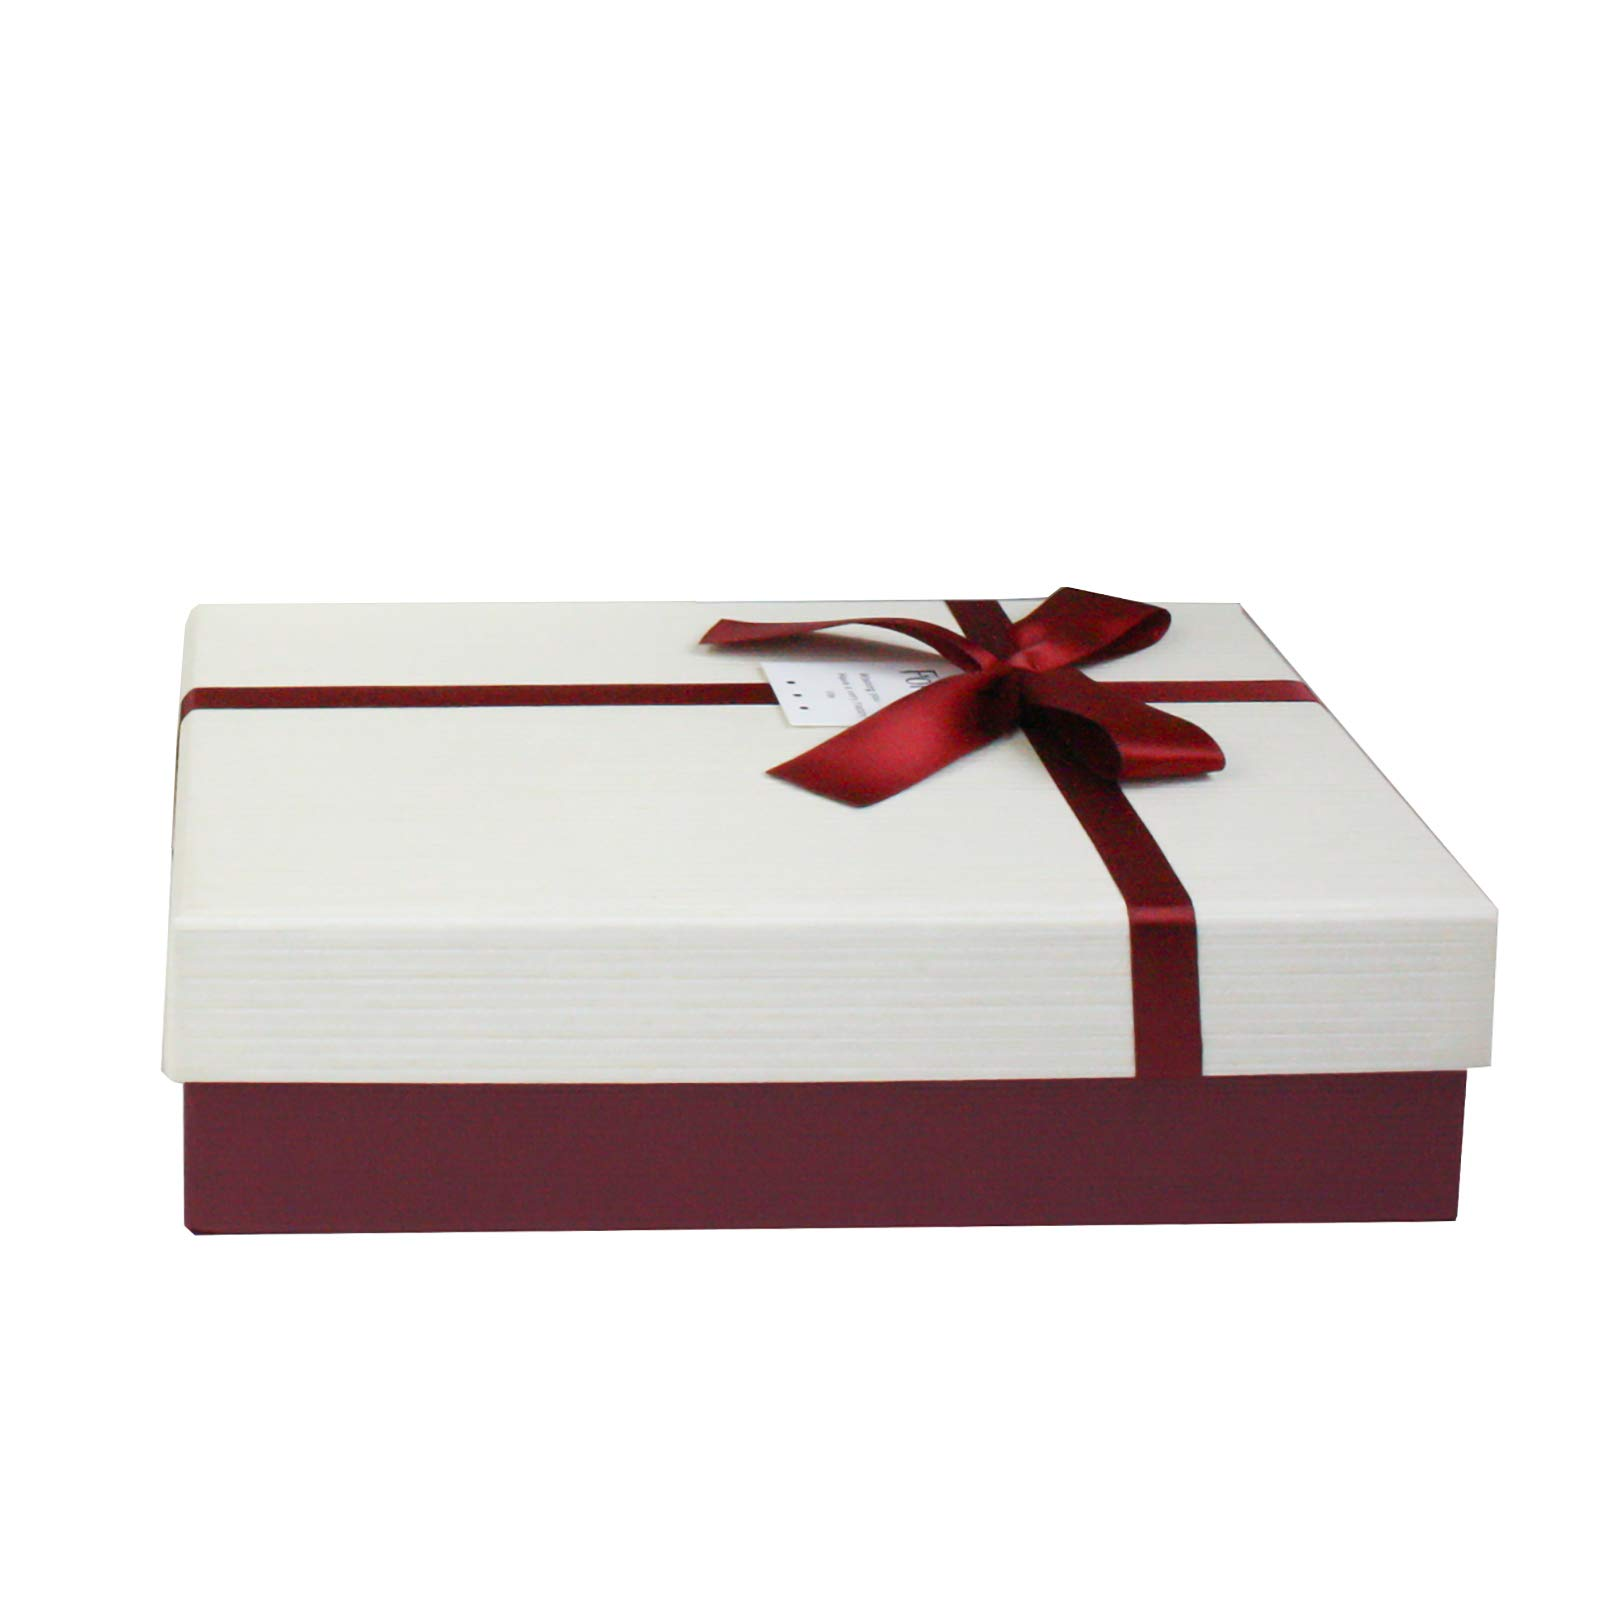 Pack of 12 Rectangle Shaped Gift Box with Clear Lid /& Satin Ribbon